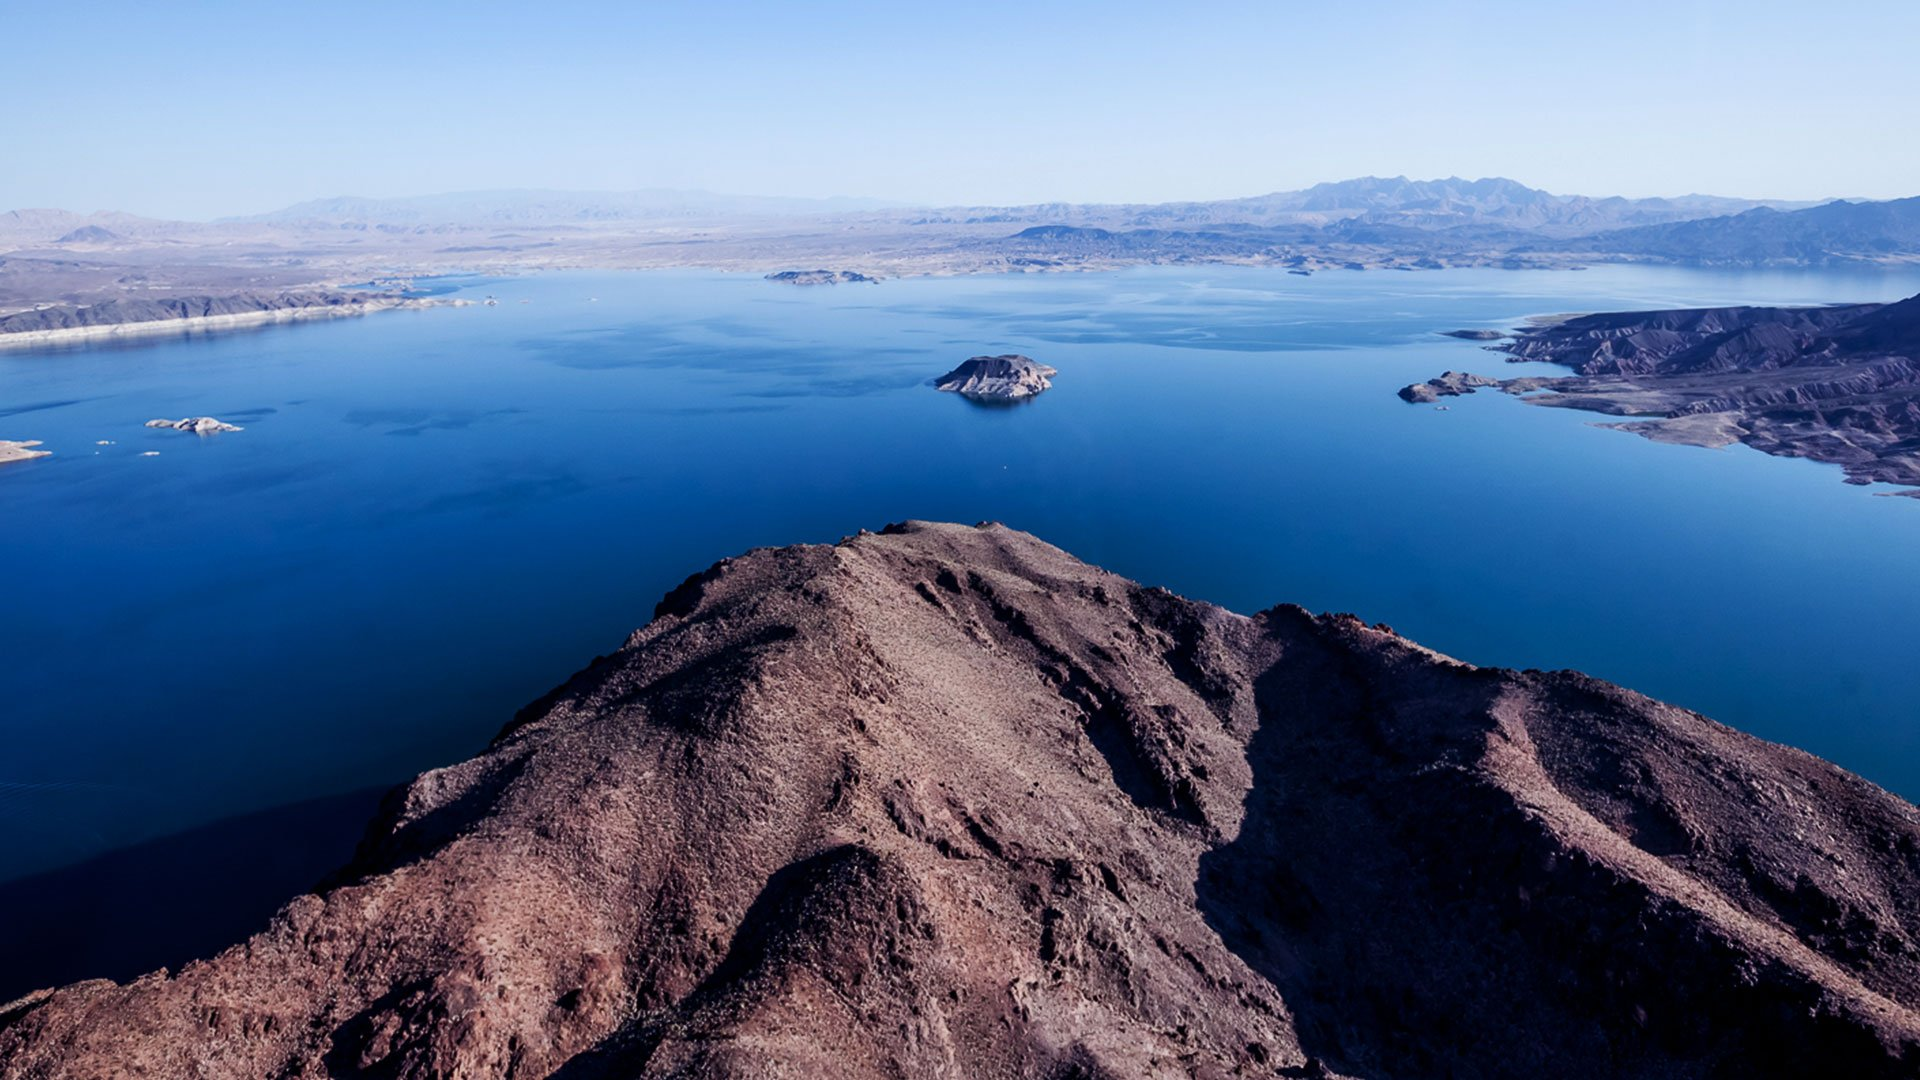 Aerial view of the bright blue waters of Lake Mead. Papillon air tours